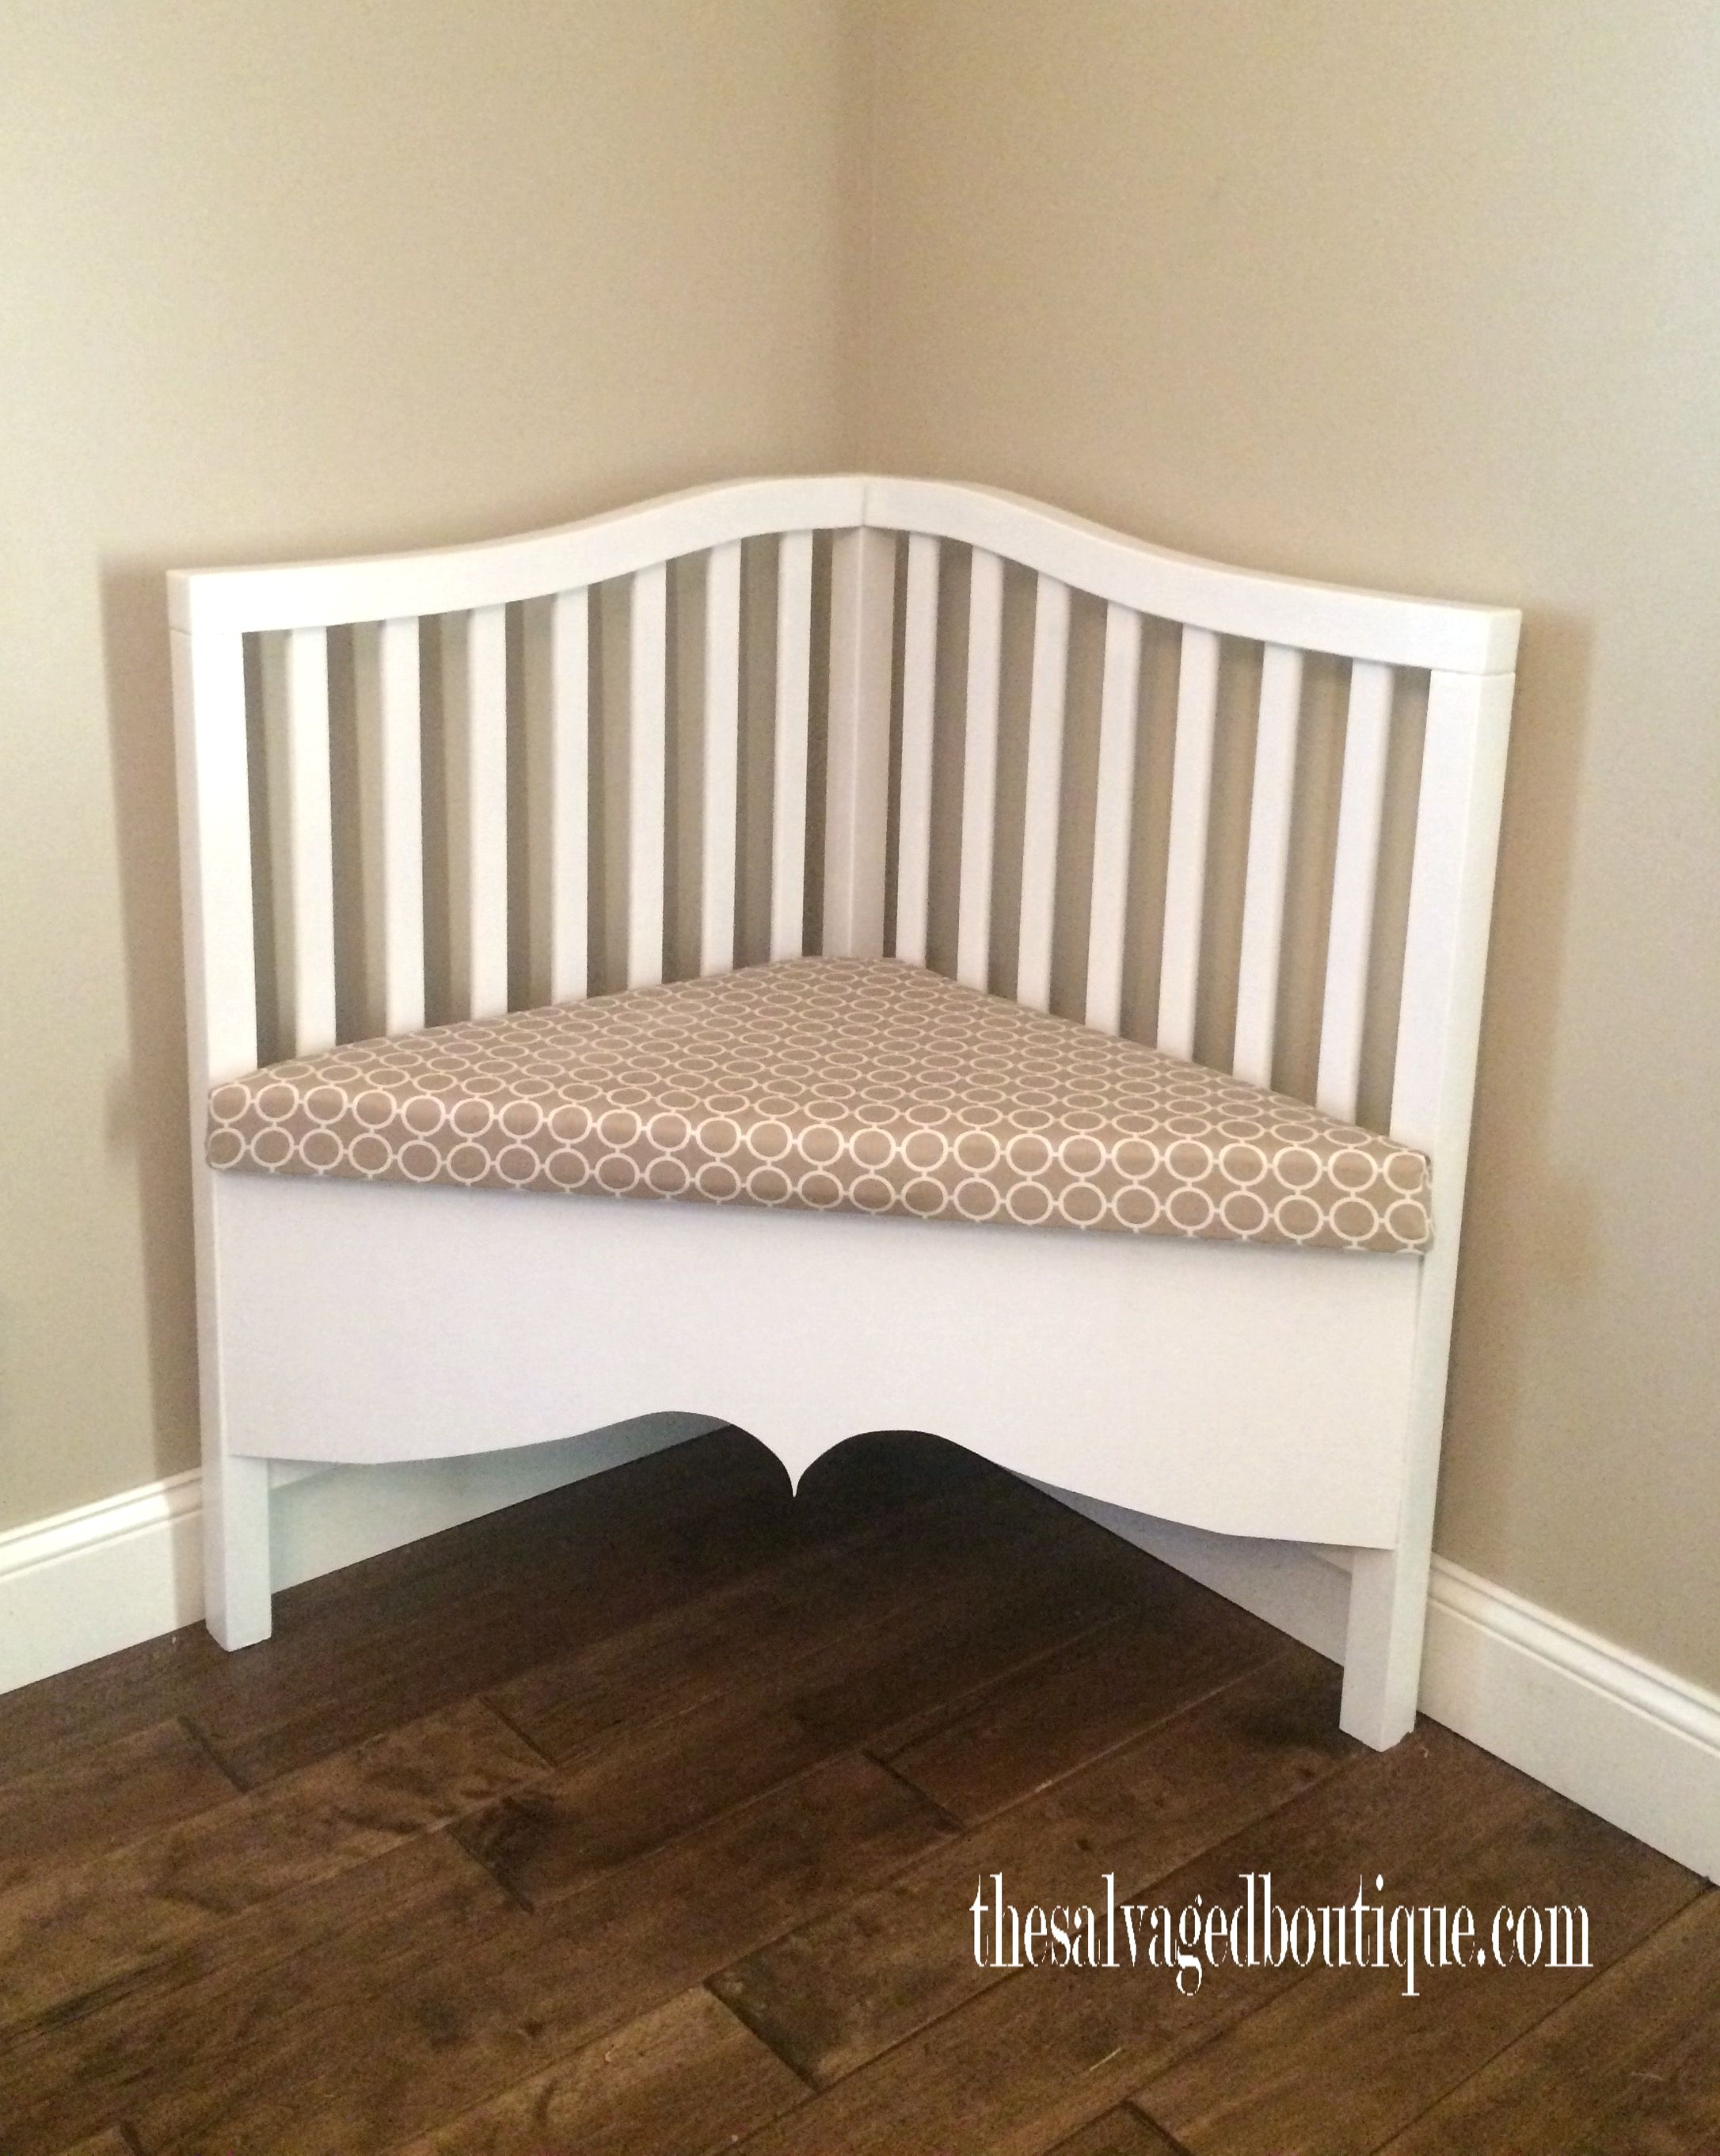 Baby crib mattress frame - 25 Best Ideas About Baby Crib Mattress On Pinterest Toddler Bed Mattress Diy Front Porch Ideas And Crib Mattress